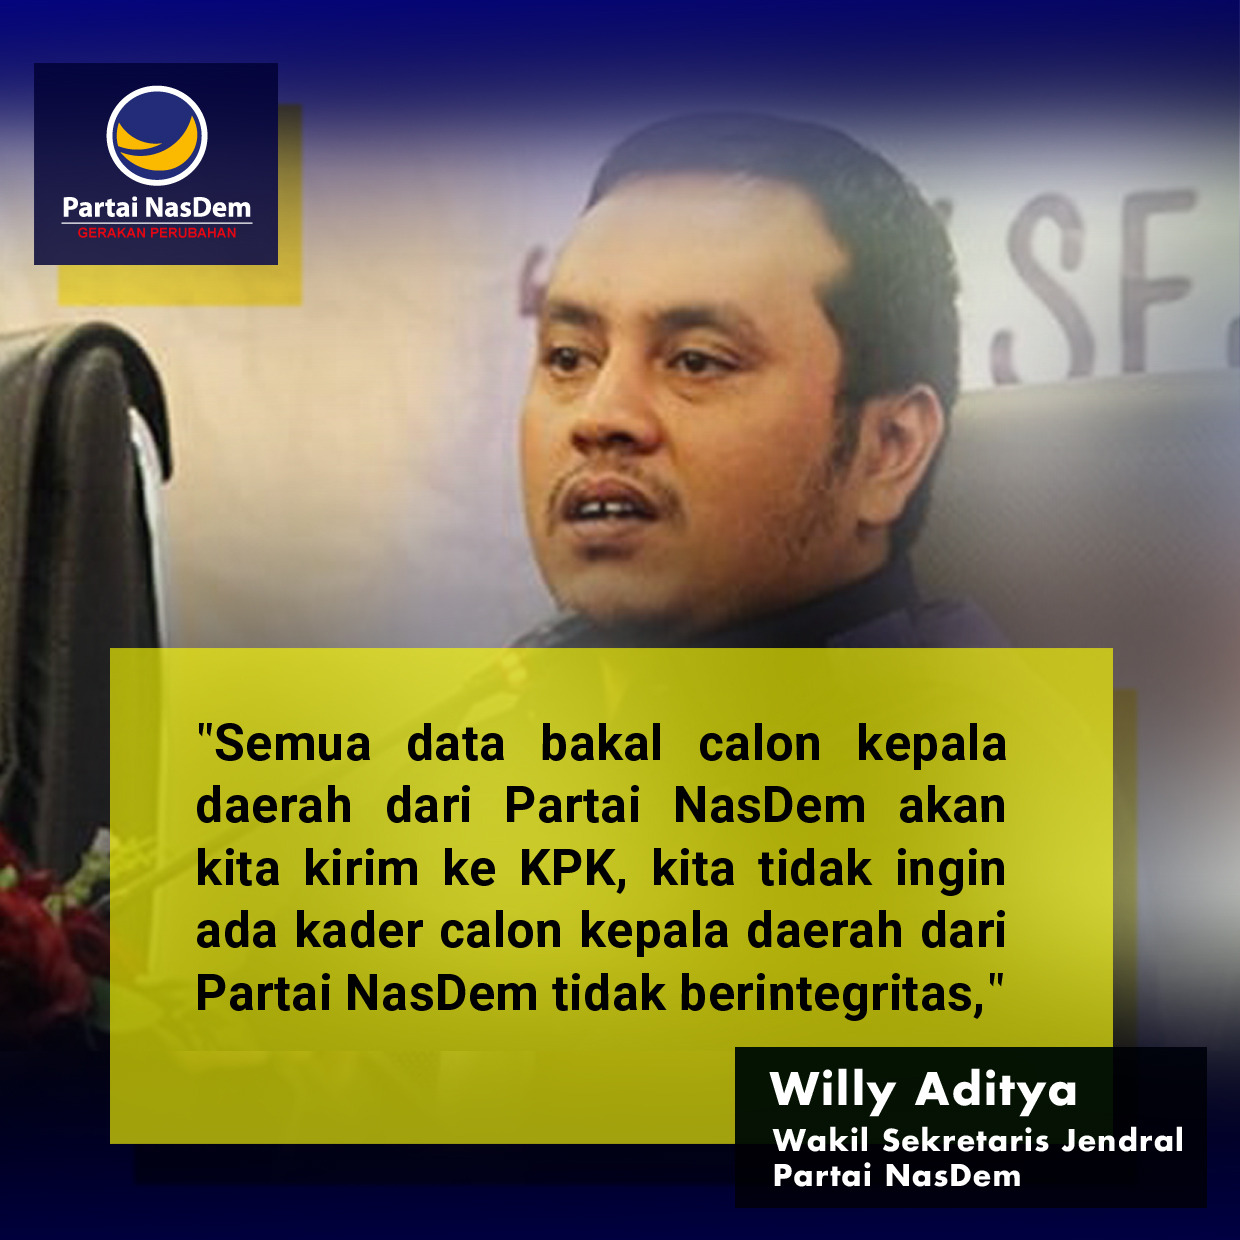 Willy Aditya